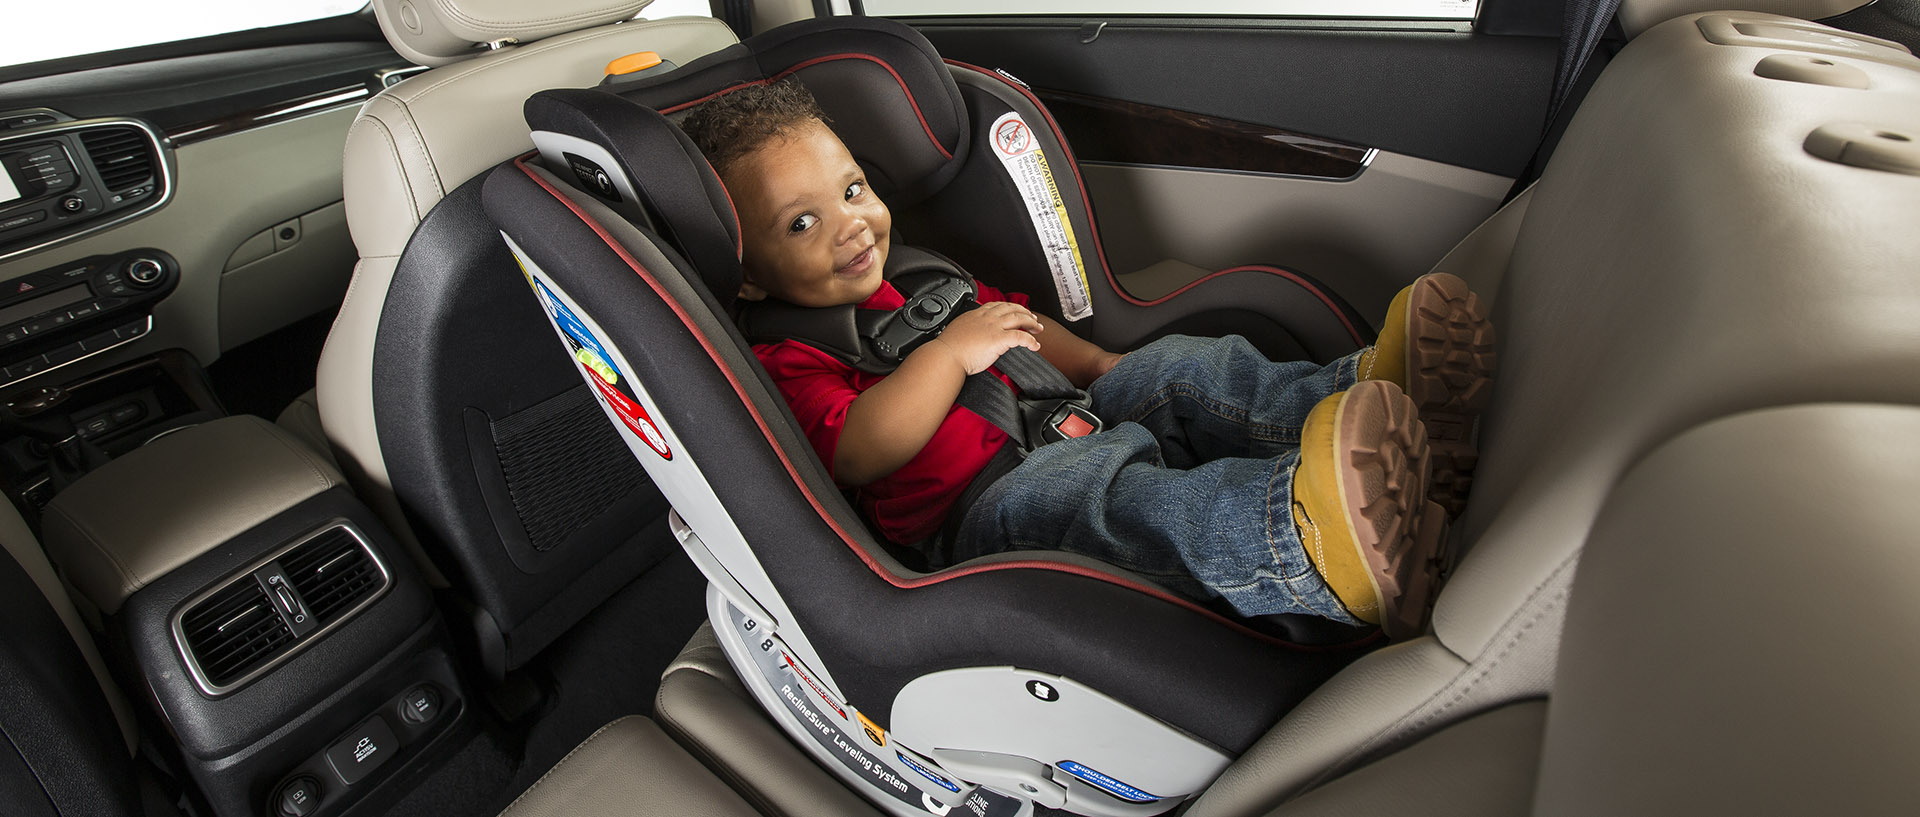 Infant Car Seat For Truck Back Seat